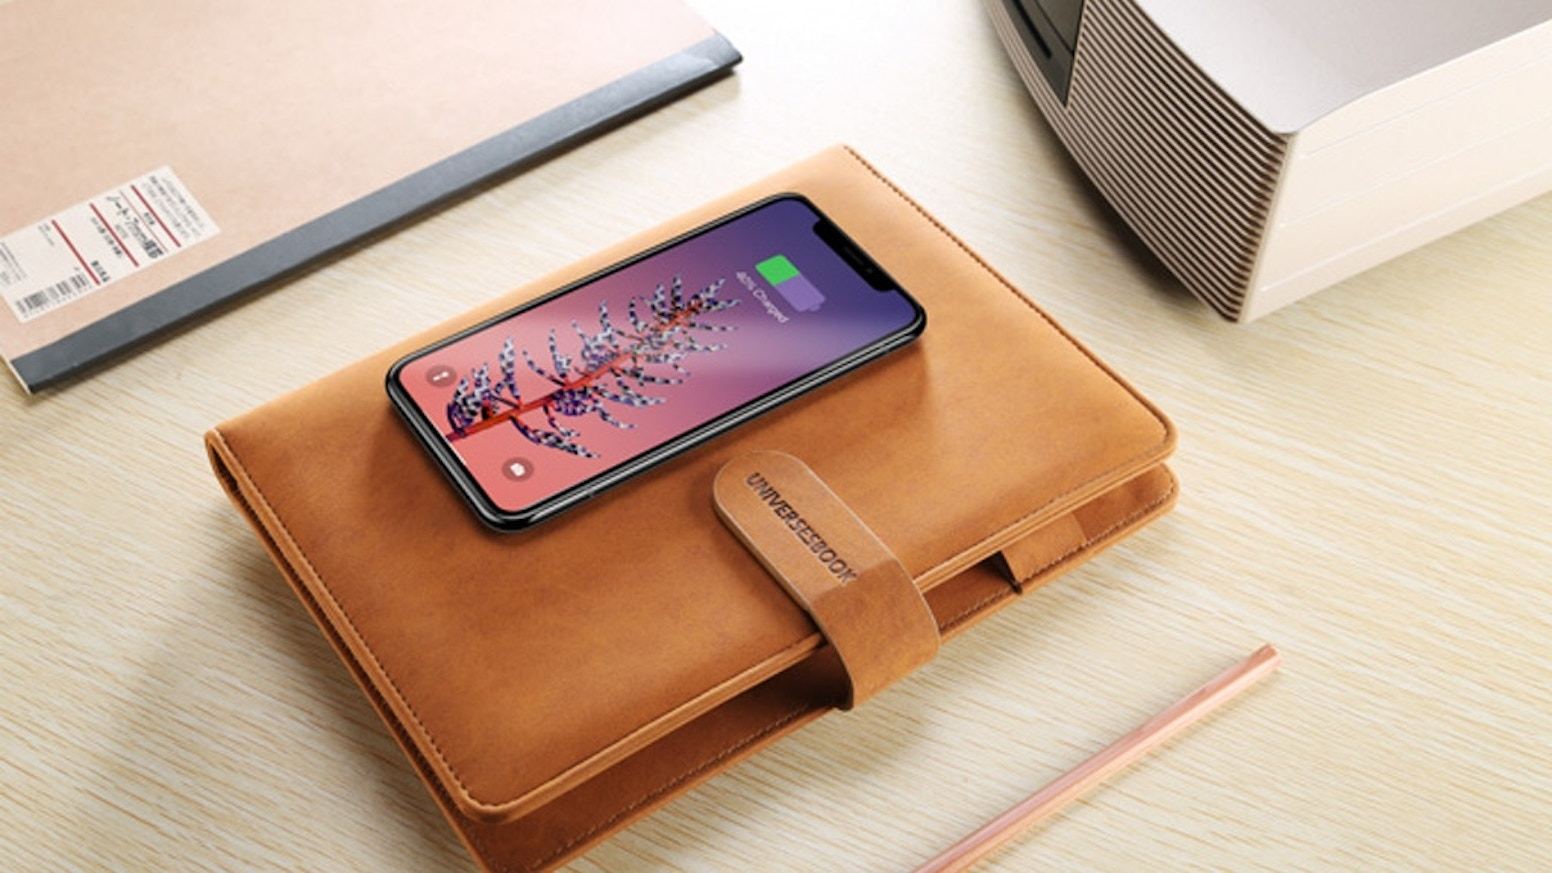 The Tesmo Universe Book is the world's most functional yet stylish multi-device charger and planner to simplify your life.